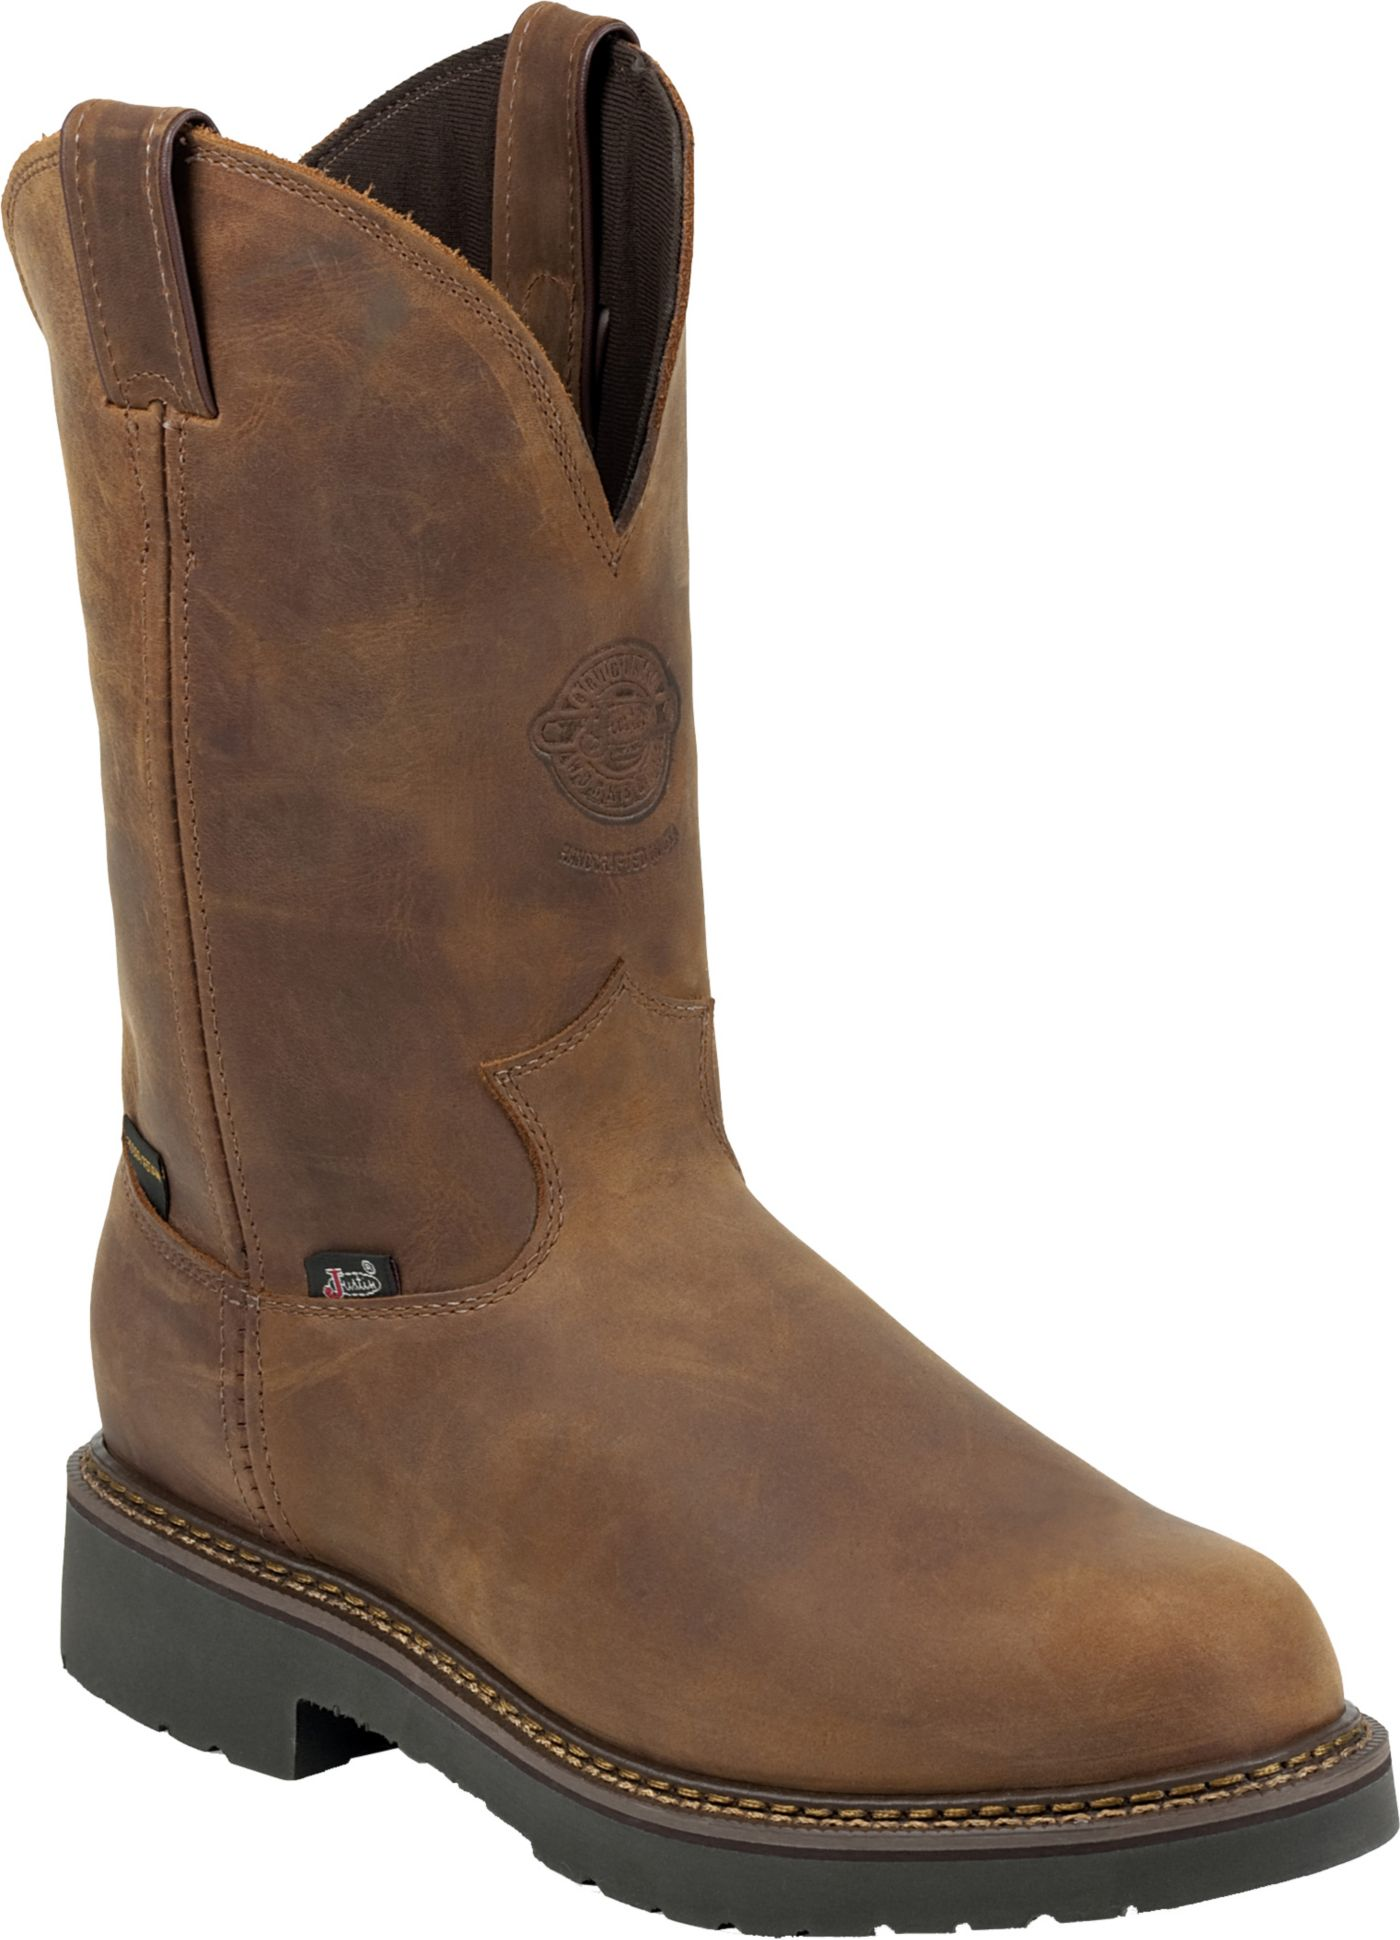 Justin Men's Rugged Aged Bark Gaucho Waterproof Western Work Boots